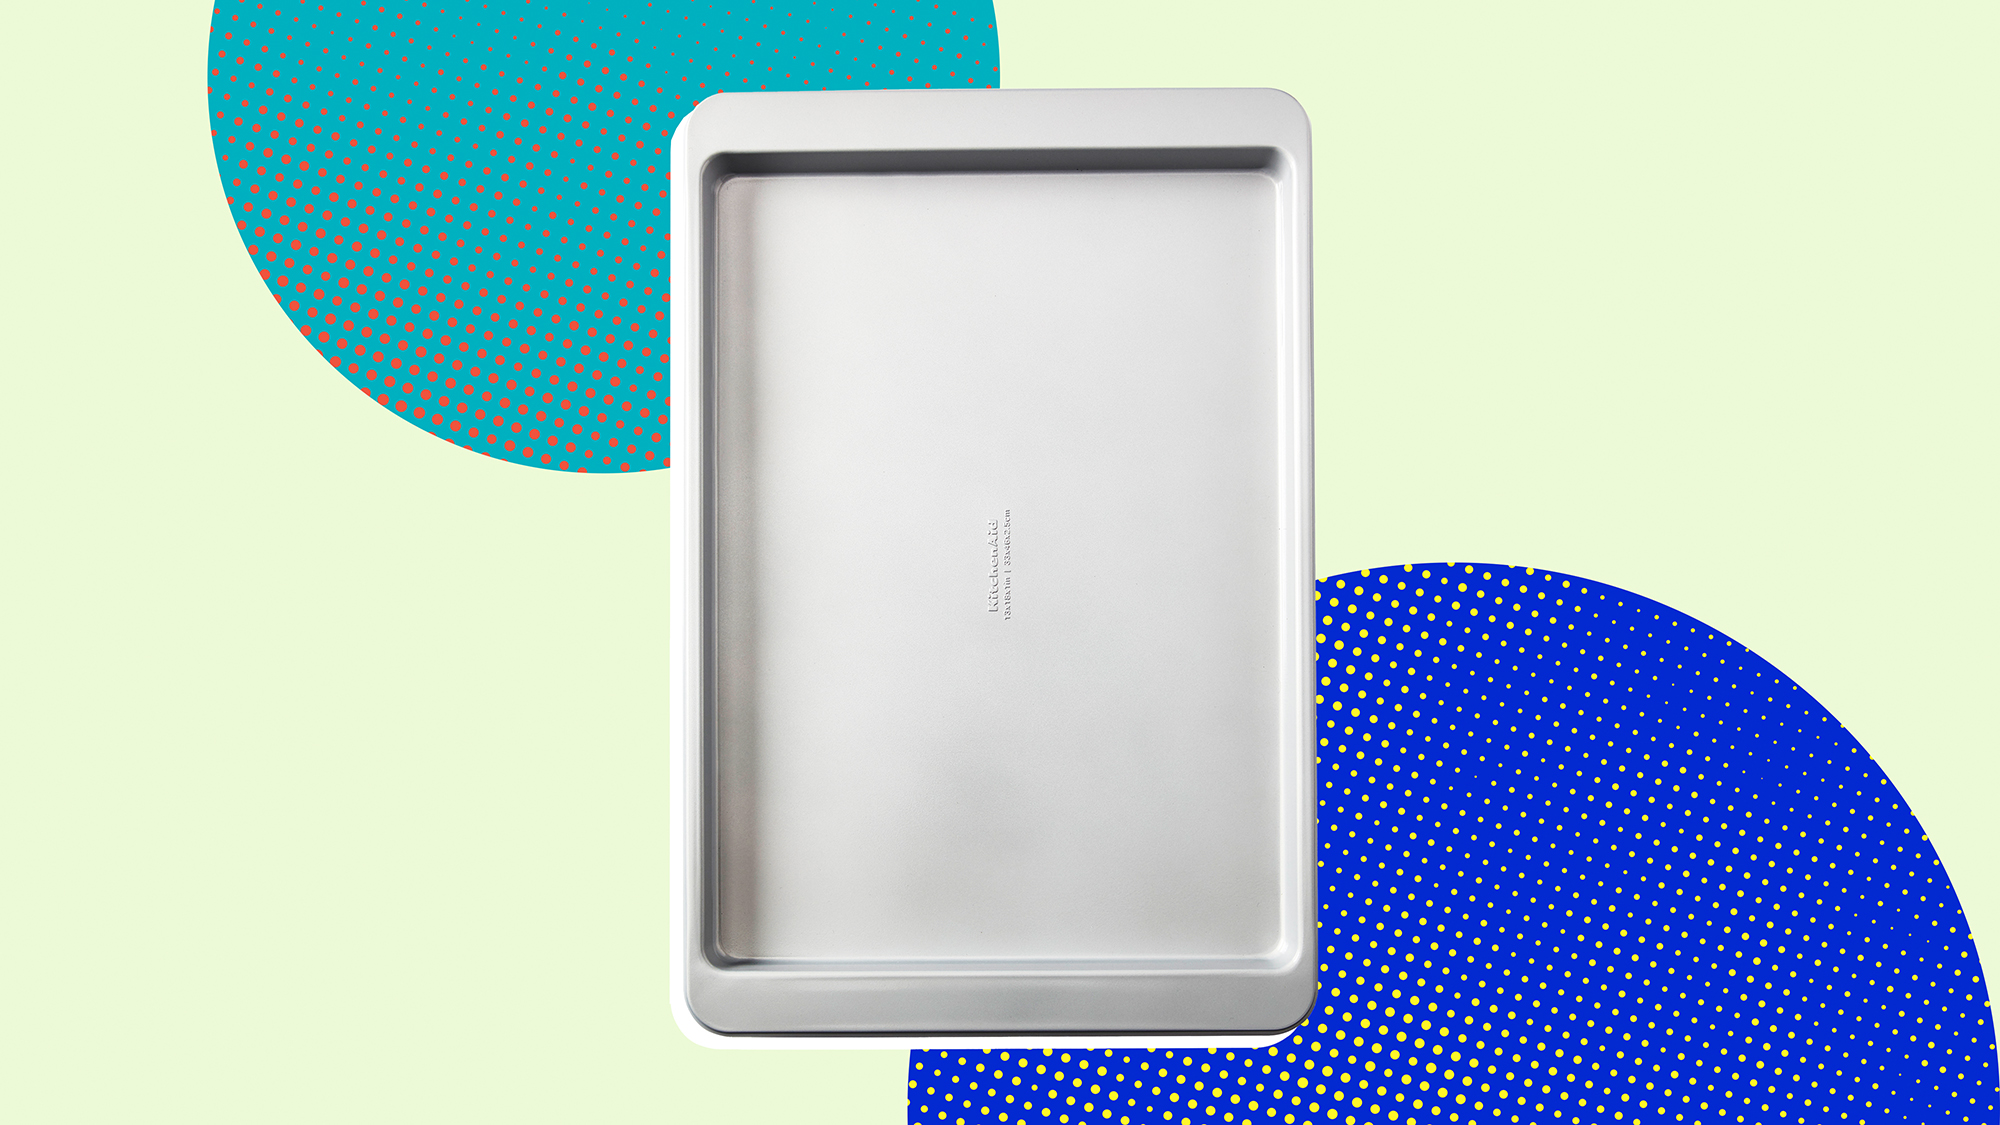 Kitchen-aid sheet pan on a designed background